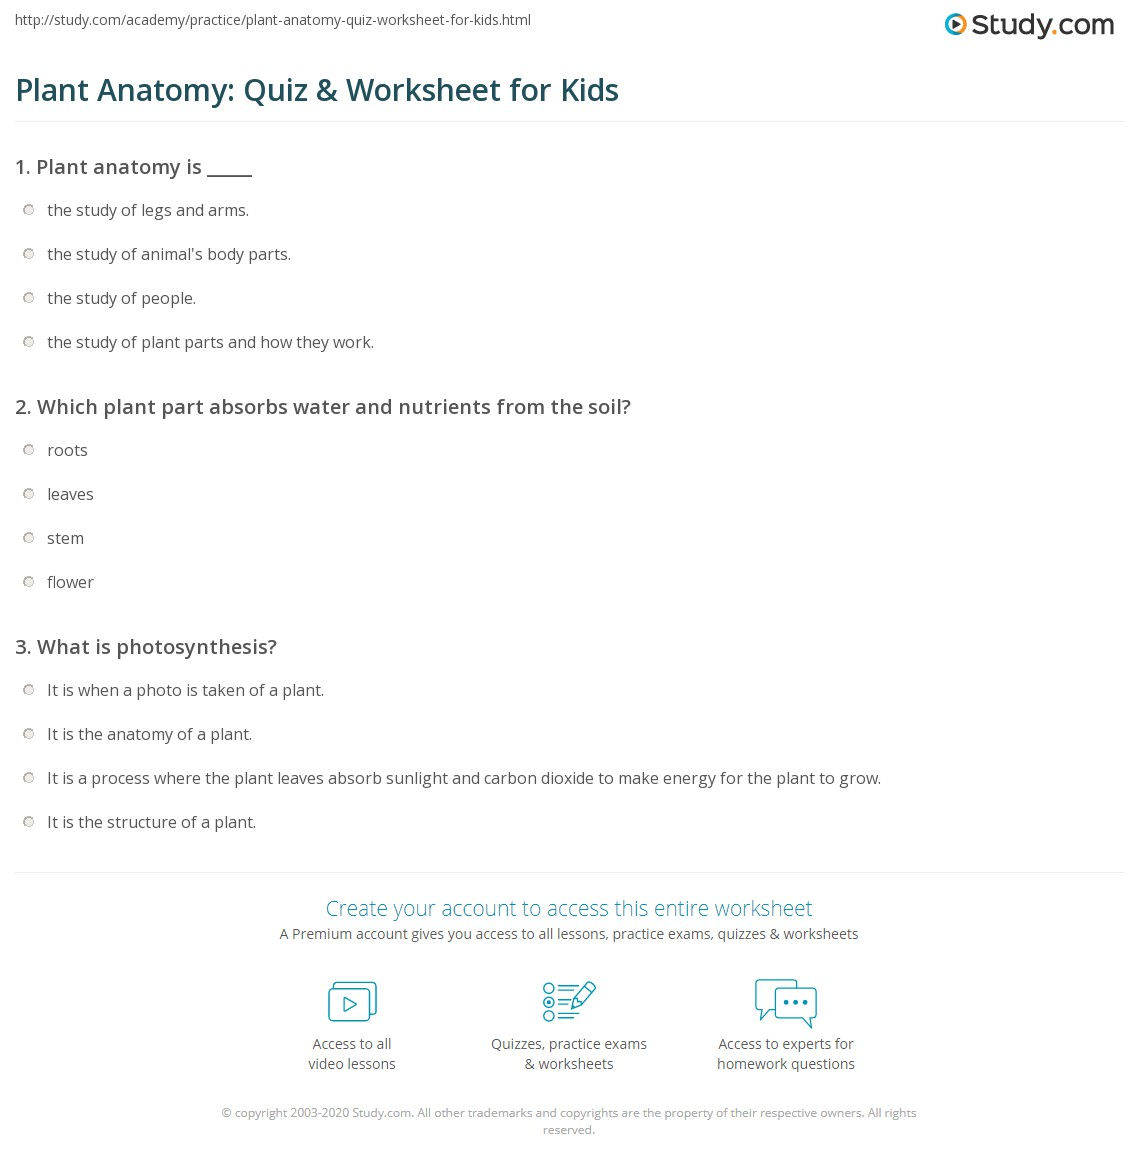 worksheet Plant Anatomy Worksheet plant anatomy quiz worksheet for kids study com print lesson worksheet